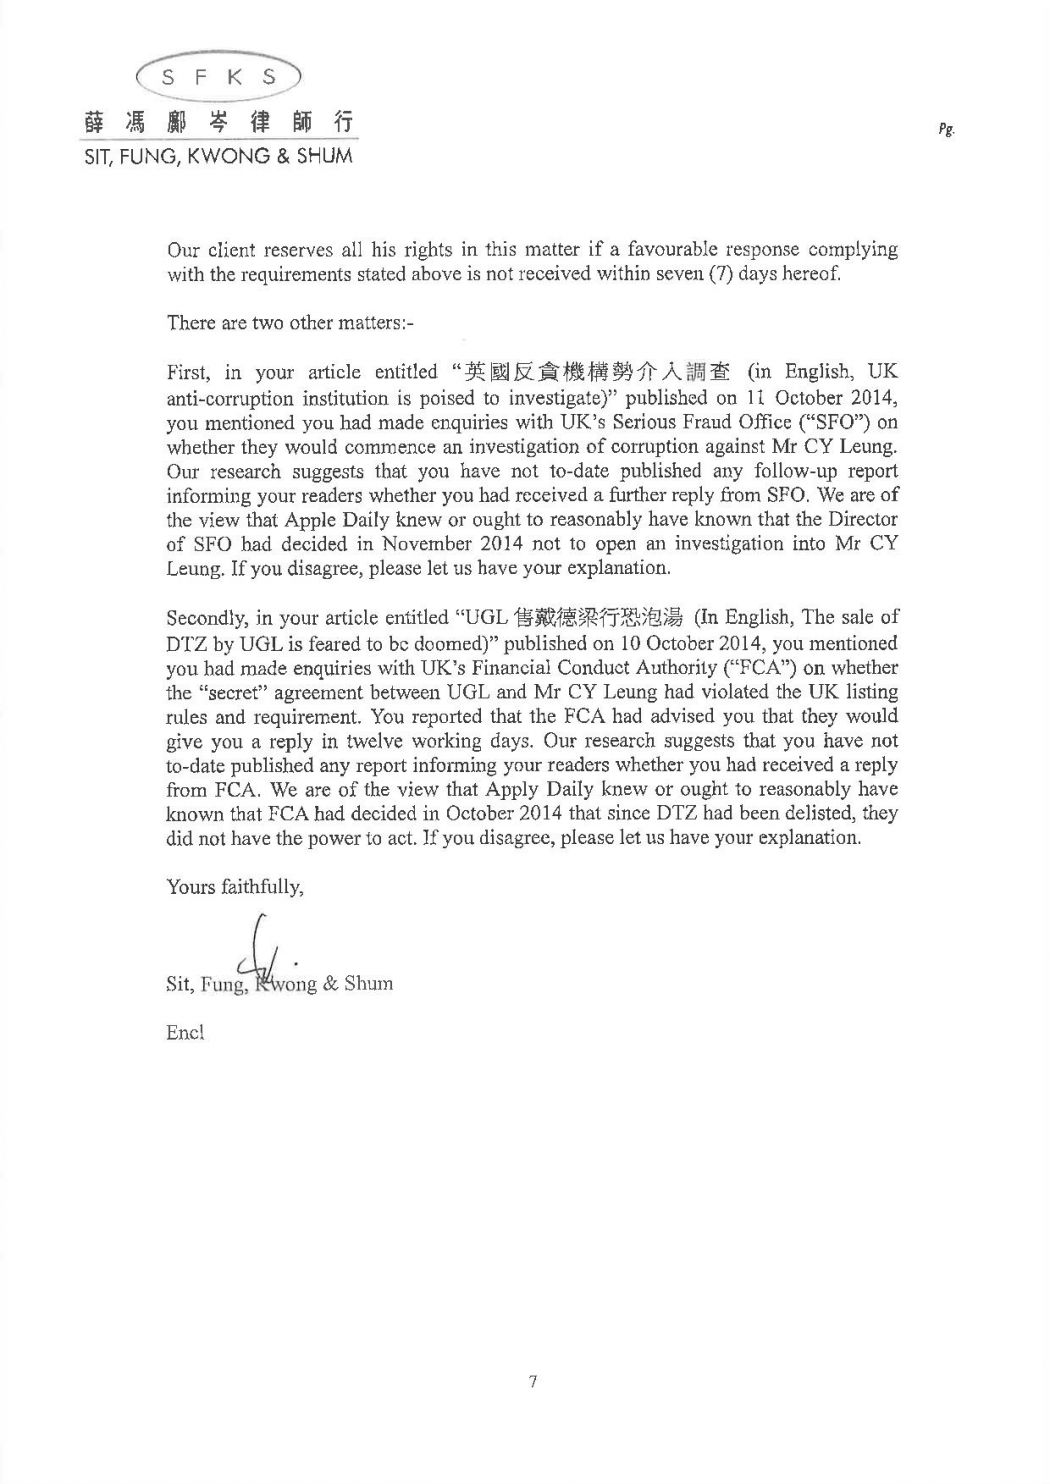 legal letter in full hk chief exec cy leung threatens to sue letter page 7 cy leung apple daily